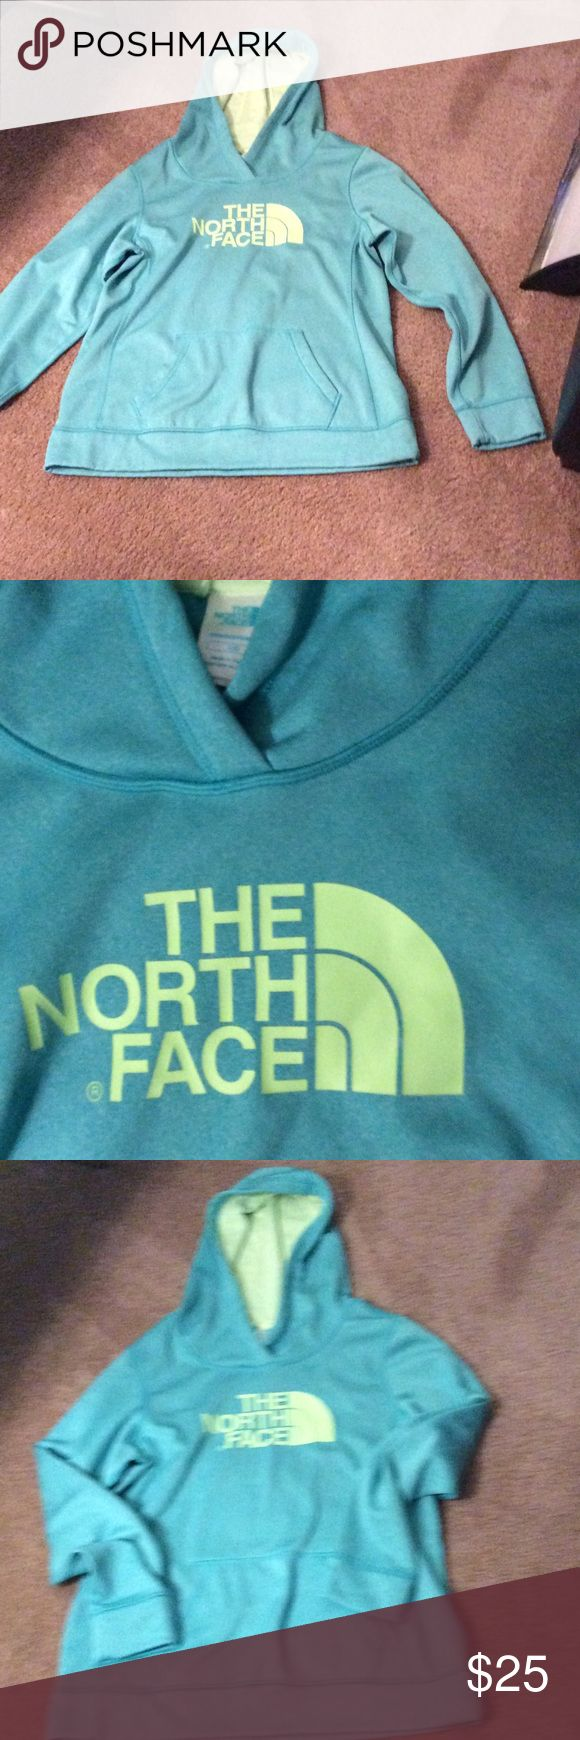 North face sweat shirt new never worn no tags Sweat hood The North Face Jackets & Coats